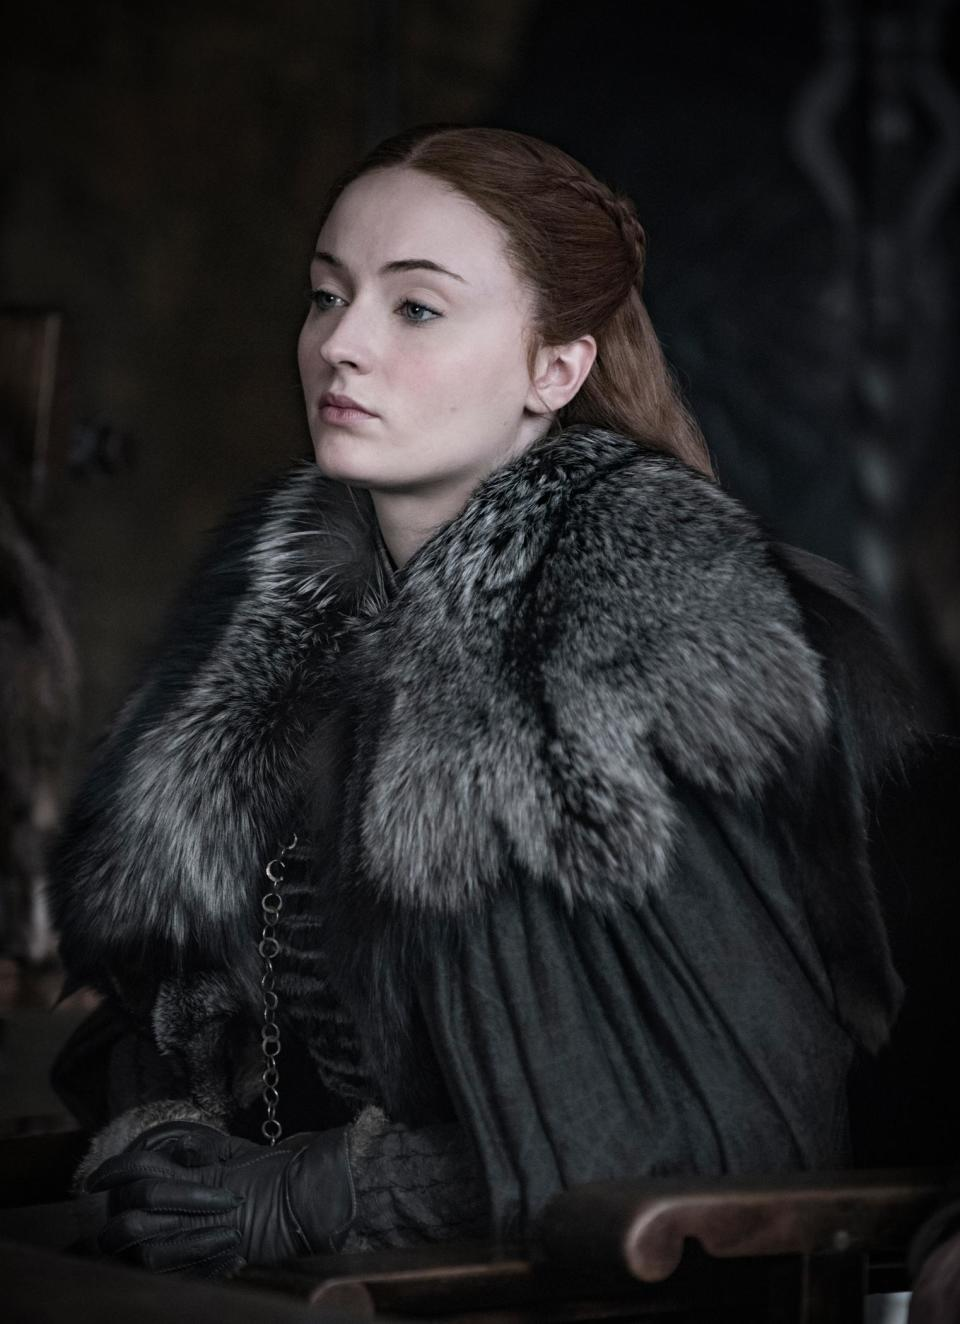 <p>The elder Stark daughter demonstrated her independence (and her cunning) by outsmarting Littlefinger in open court. She's also asserting herself in her increasingly estranged relationship with Jon. How long until she decides it's past time for a queen in the North? </p>